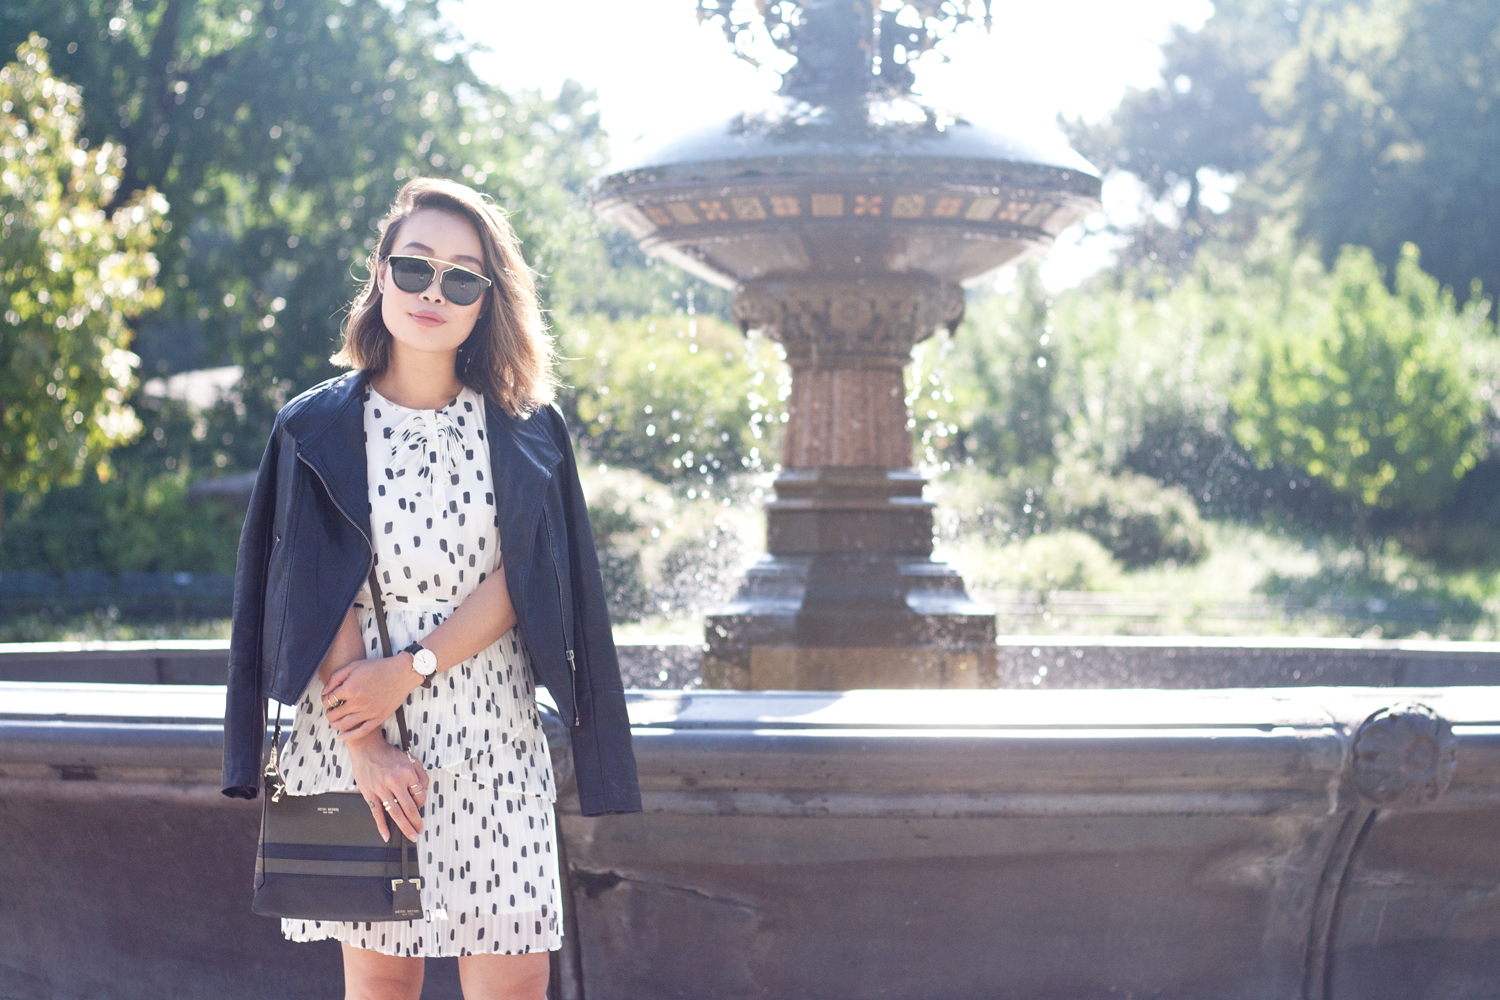 01nyc-centralpark-fountain-dots-leather-travel-fashion-style